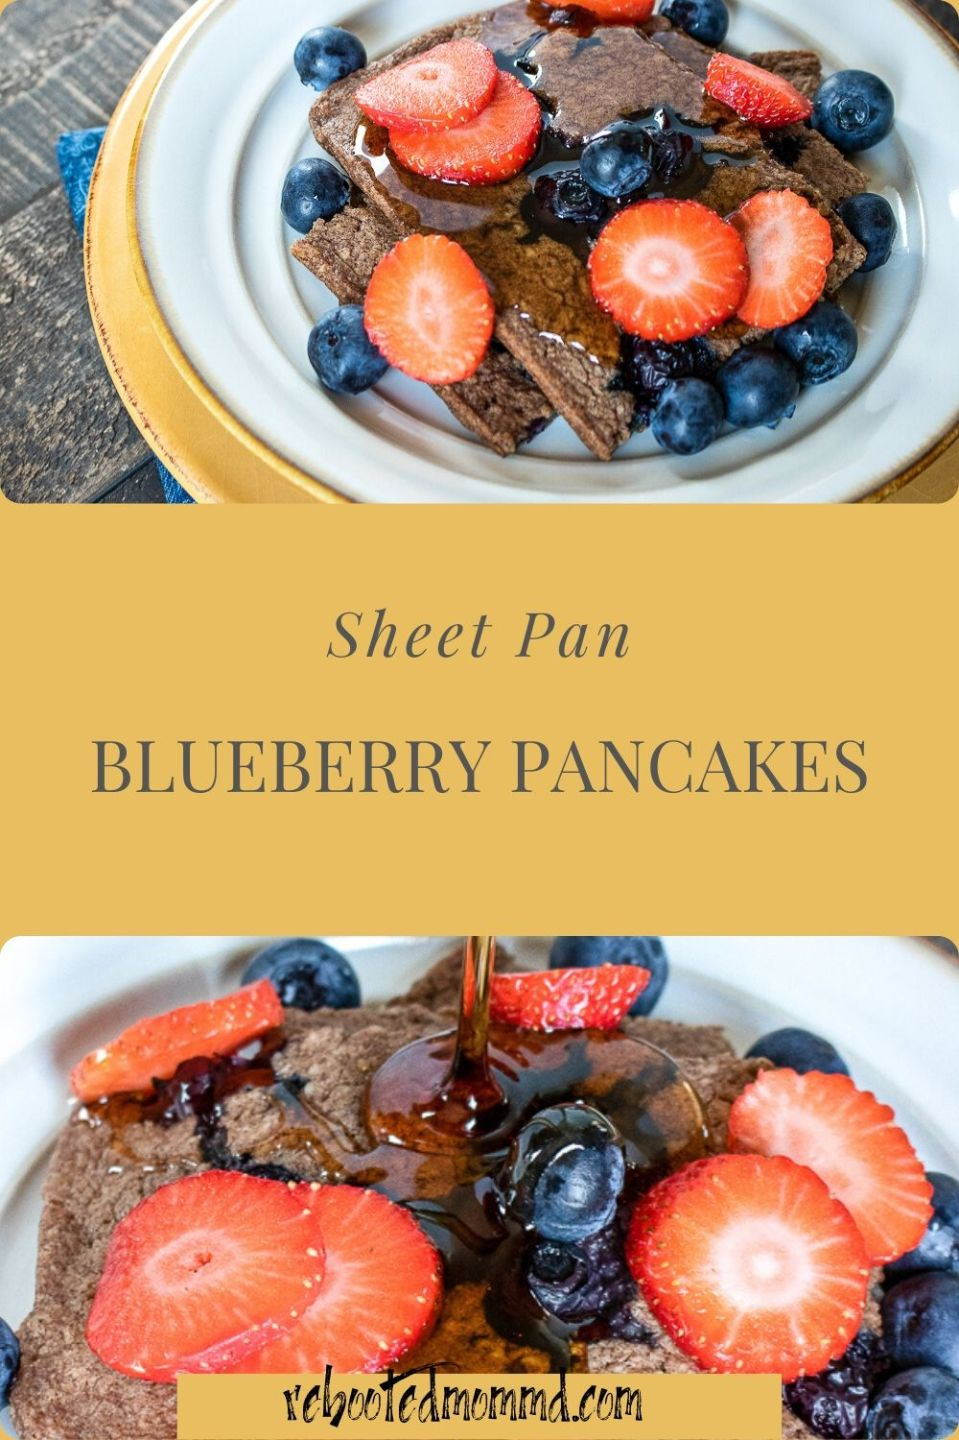 Sheet Pan Blueberry Pancakes